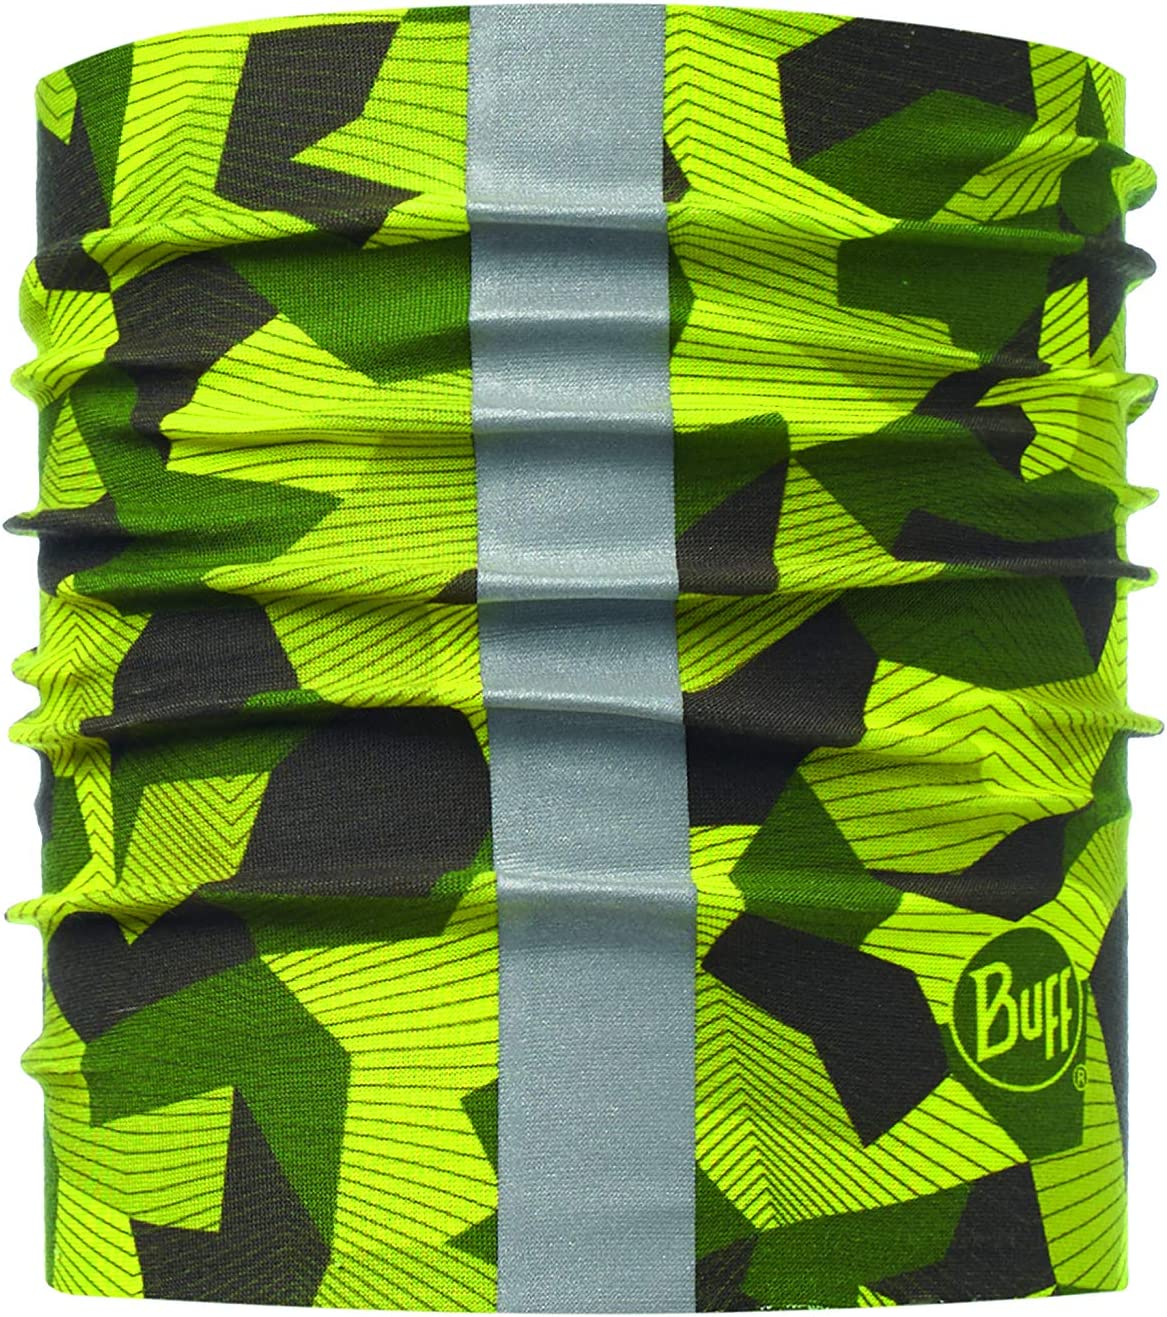 Buff Tubular Reflectante, Verde, M/L: Amazon.es: Productos para ...